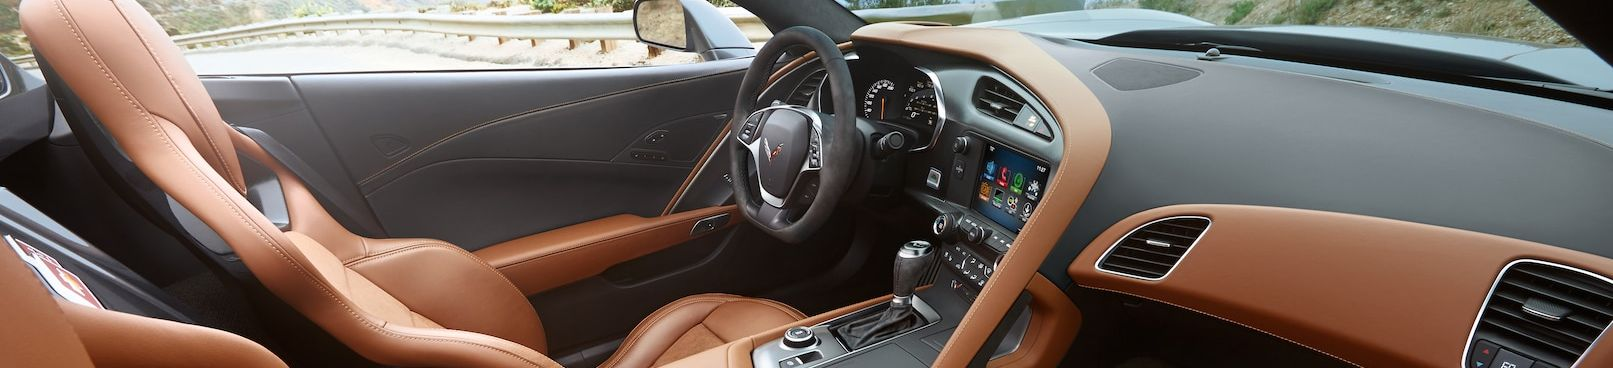 Customize the Interior of the 2019 Chevy Corvette